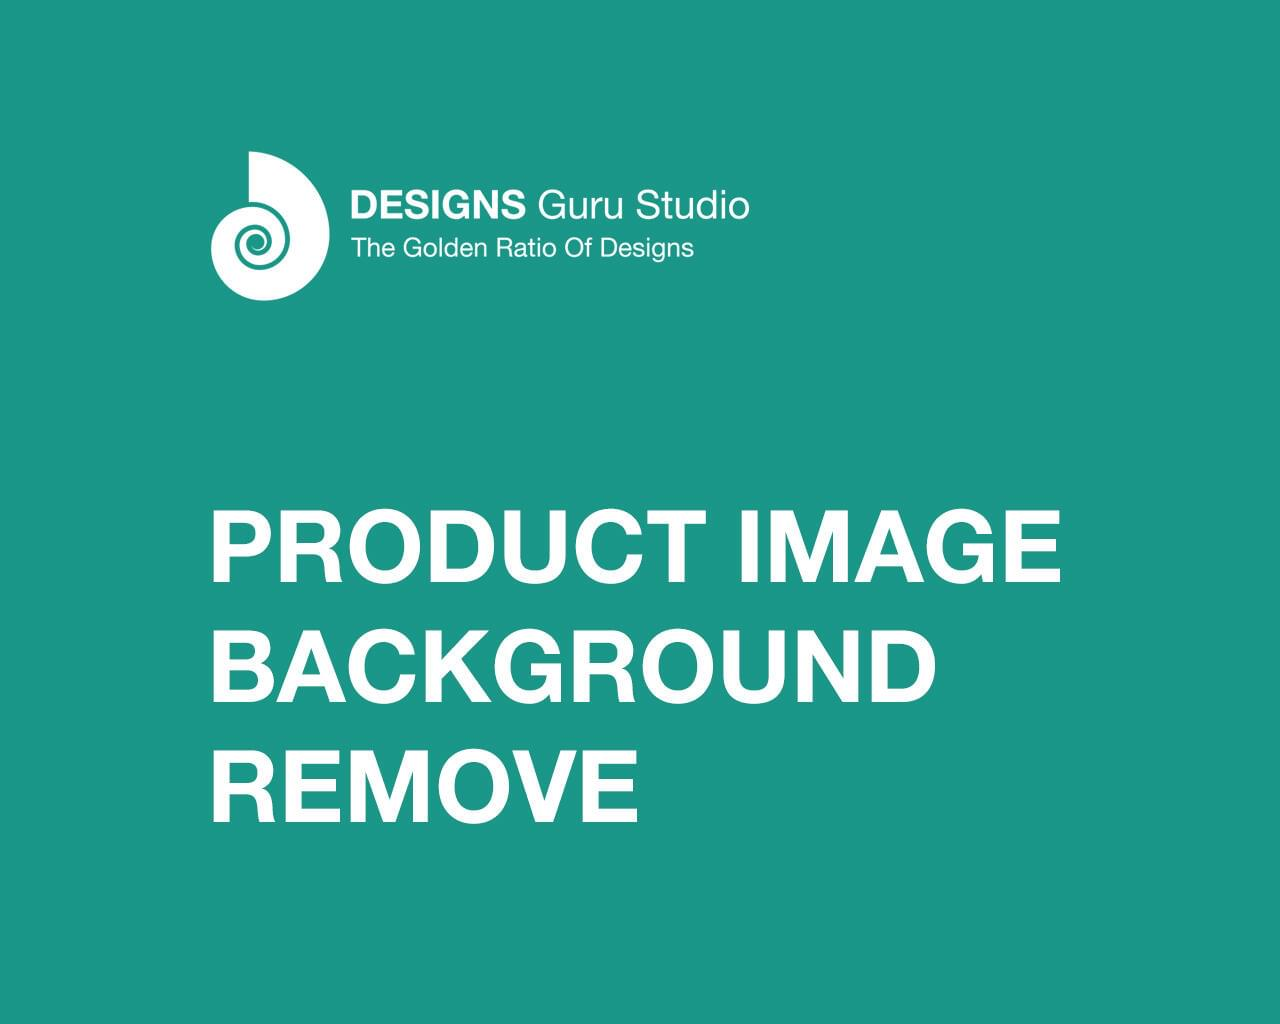 Product Image Background Remove by designsgurustudio - 117796